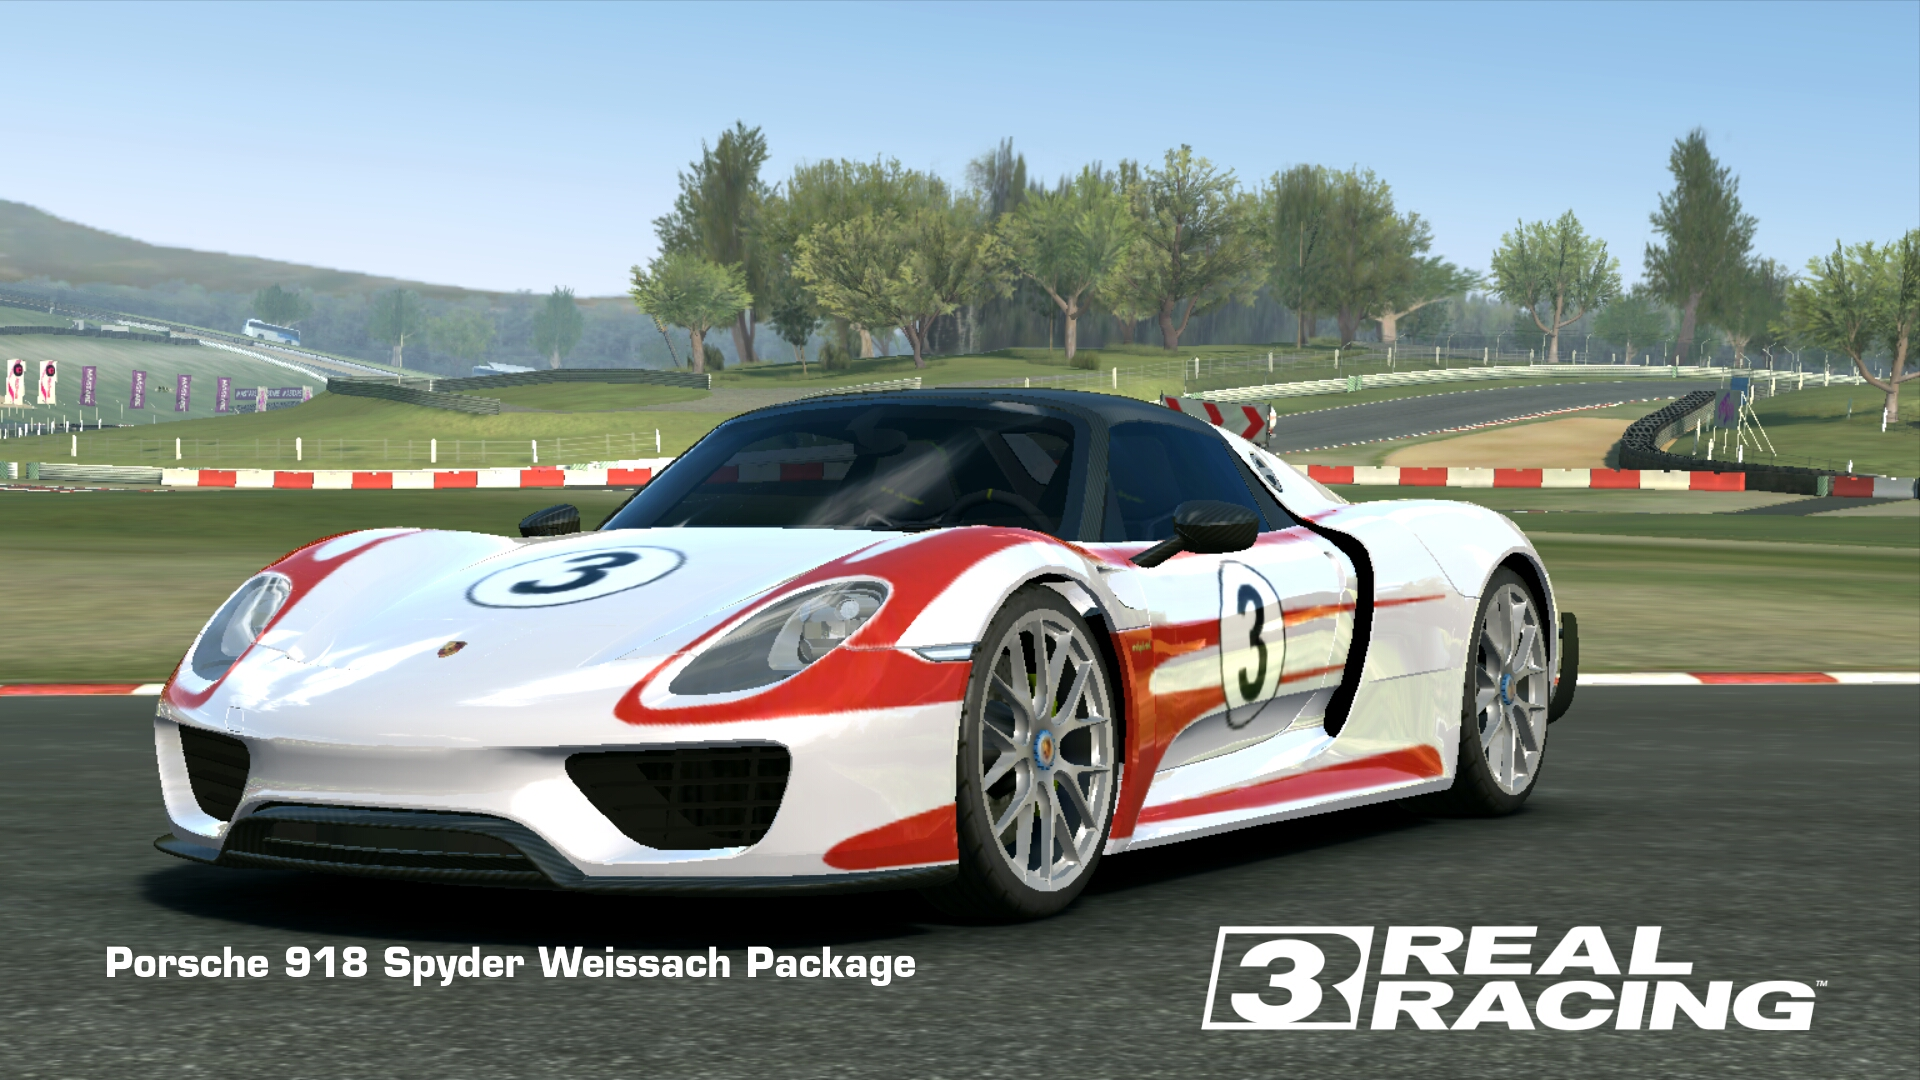 Showcase Porsche 918 Spyder Weissach Package